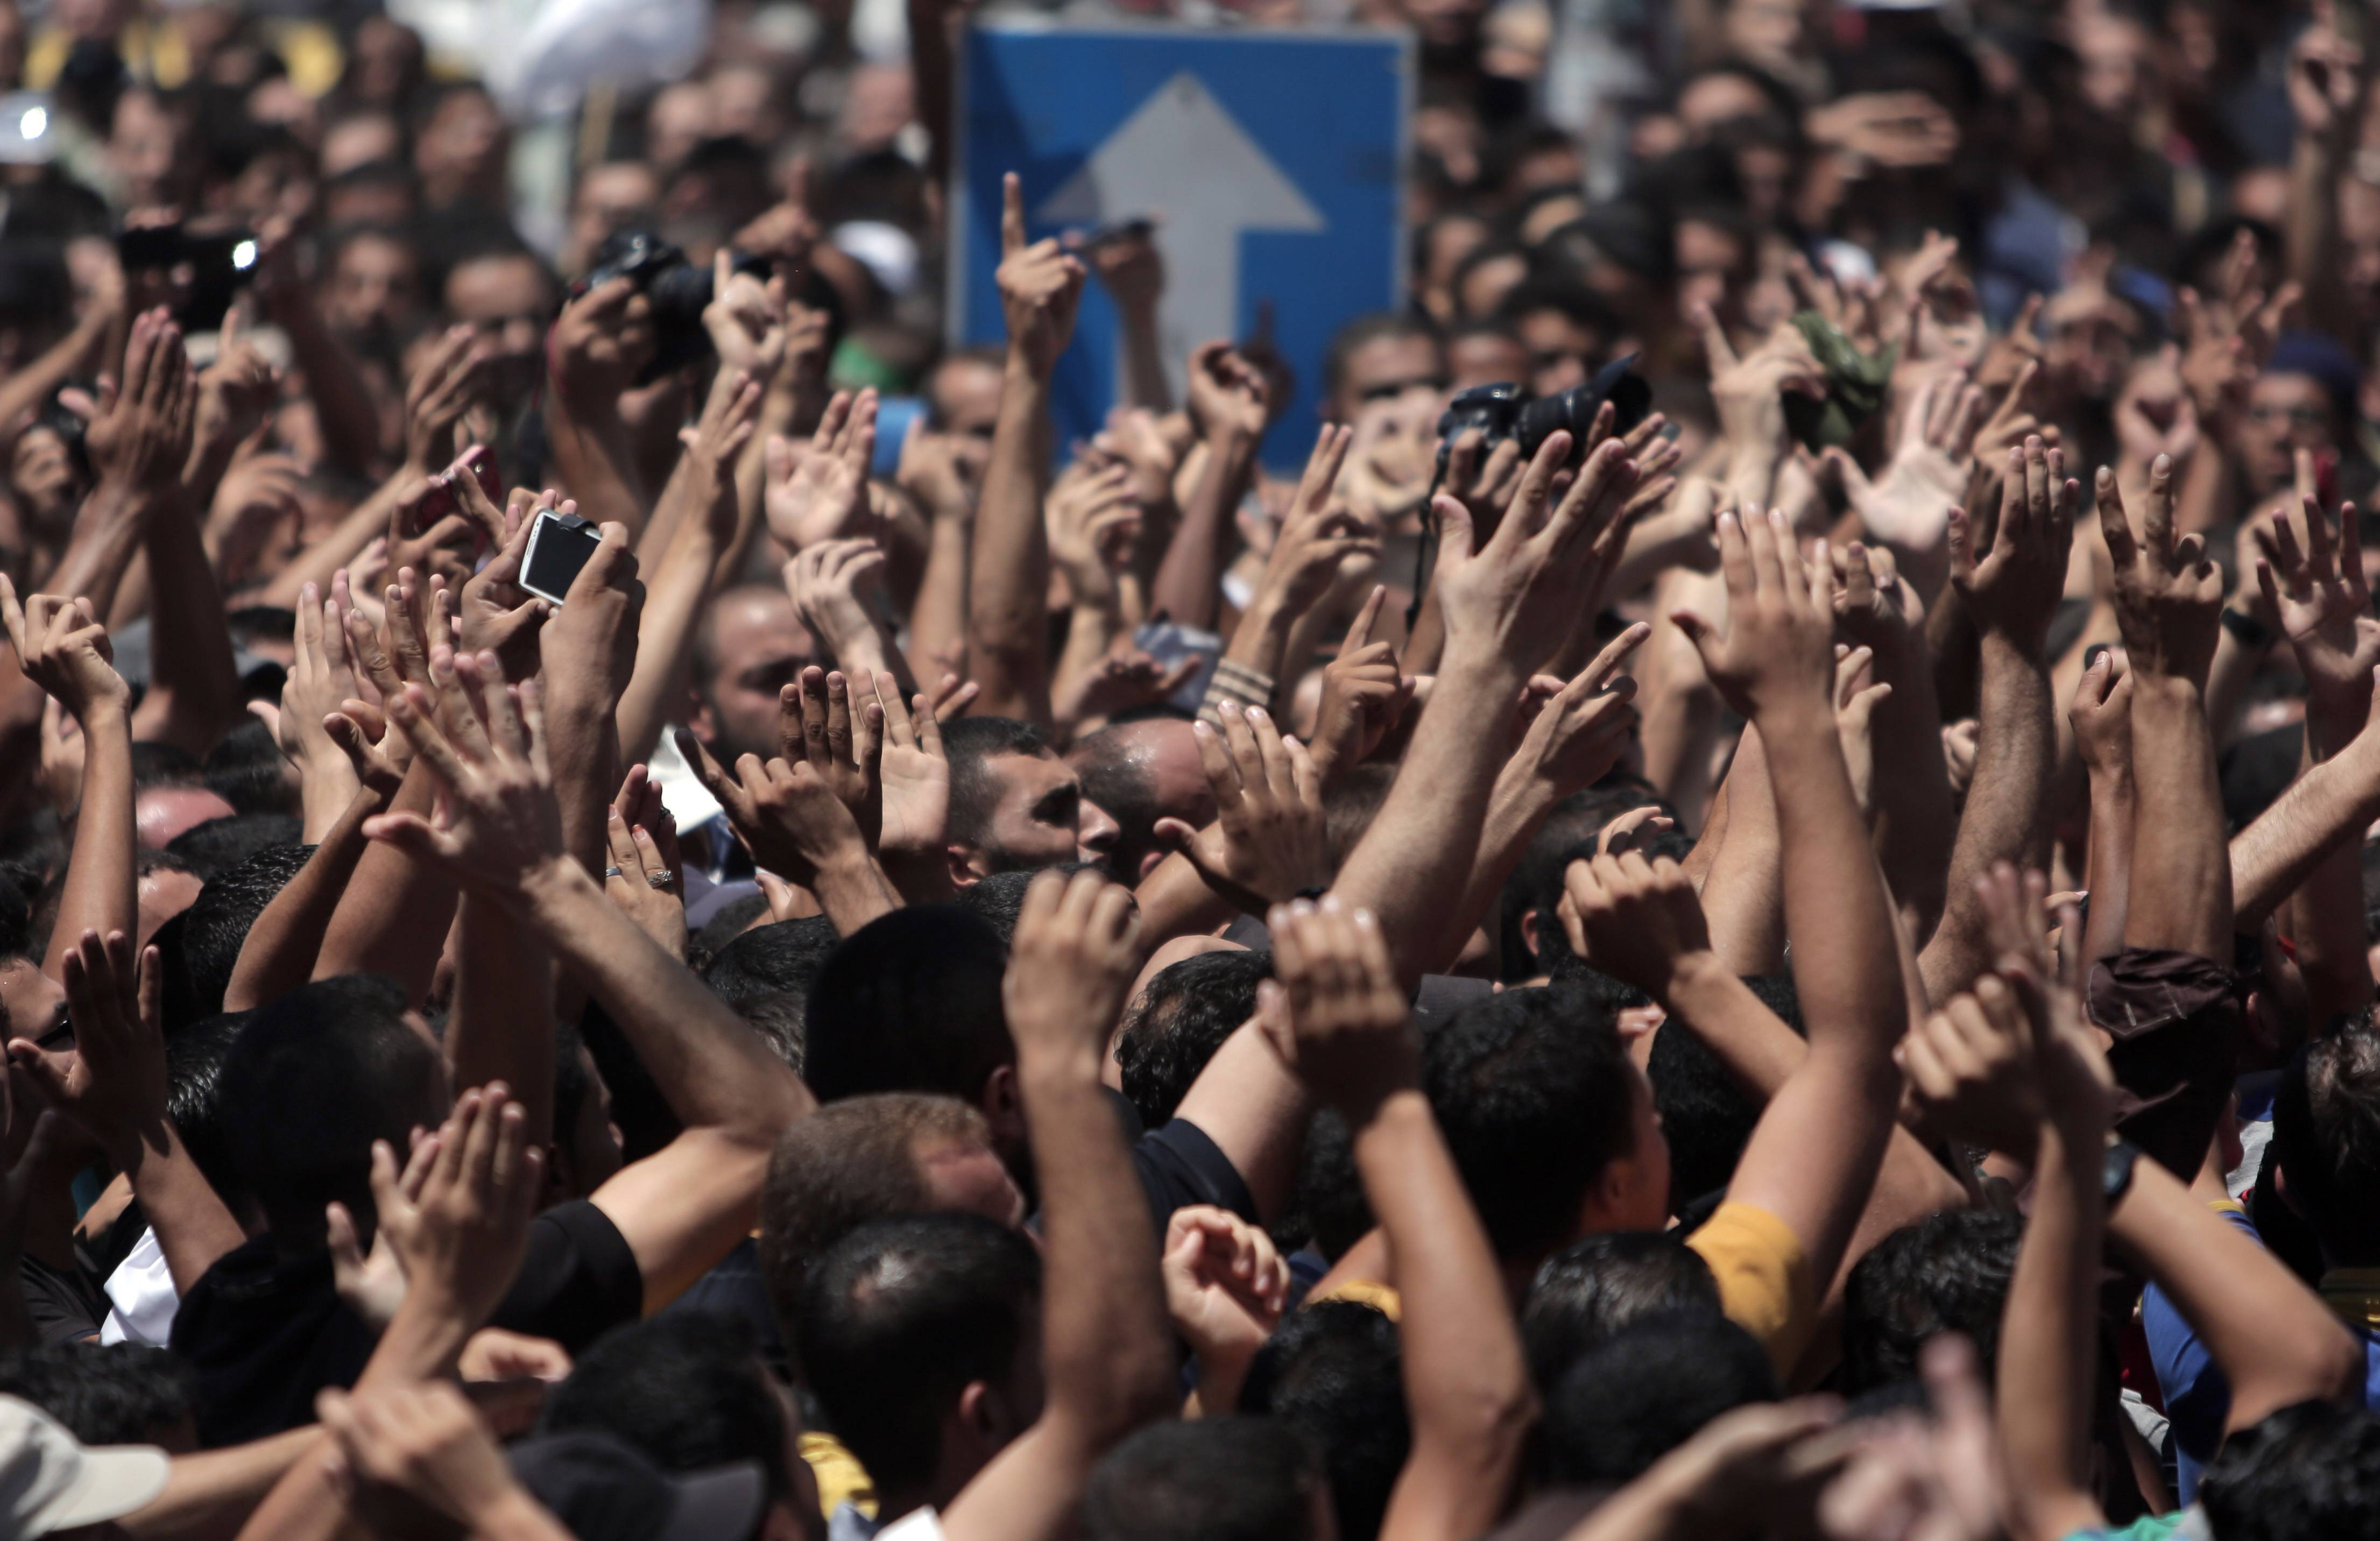 Palestinian mourners chant angry slogans as they attend the funeral of three senior commanders of the Hamas military wing who were killed in early morning Israeli strikes, in the Rafah refugee camp, Southern Gaza Strip, Thursday.